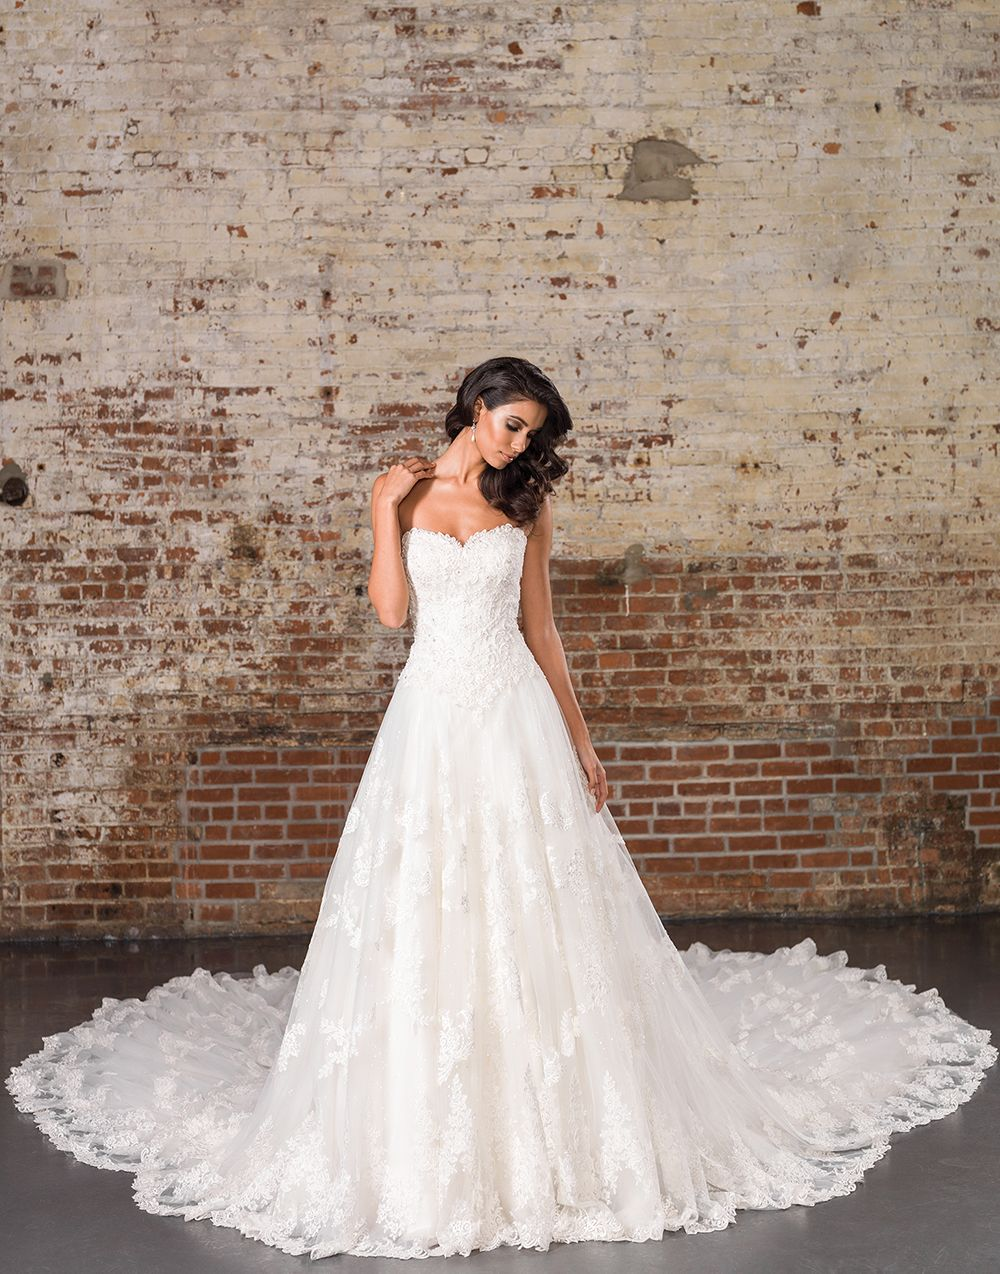 Justin Alexander signature wedding dresses style 9860 | Ball gowns ...